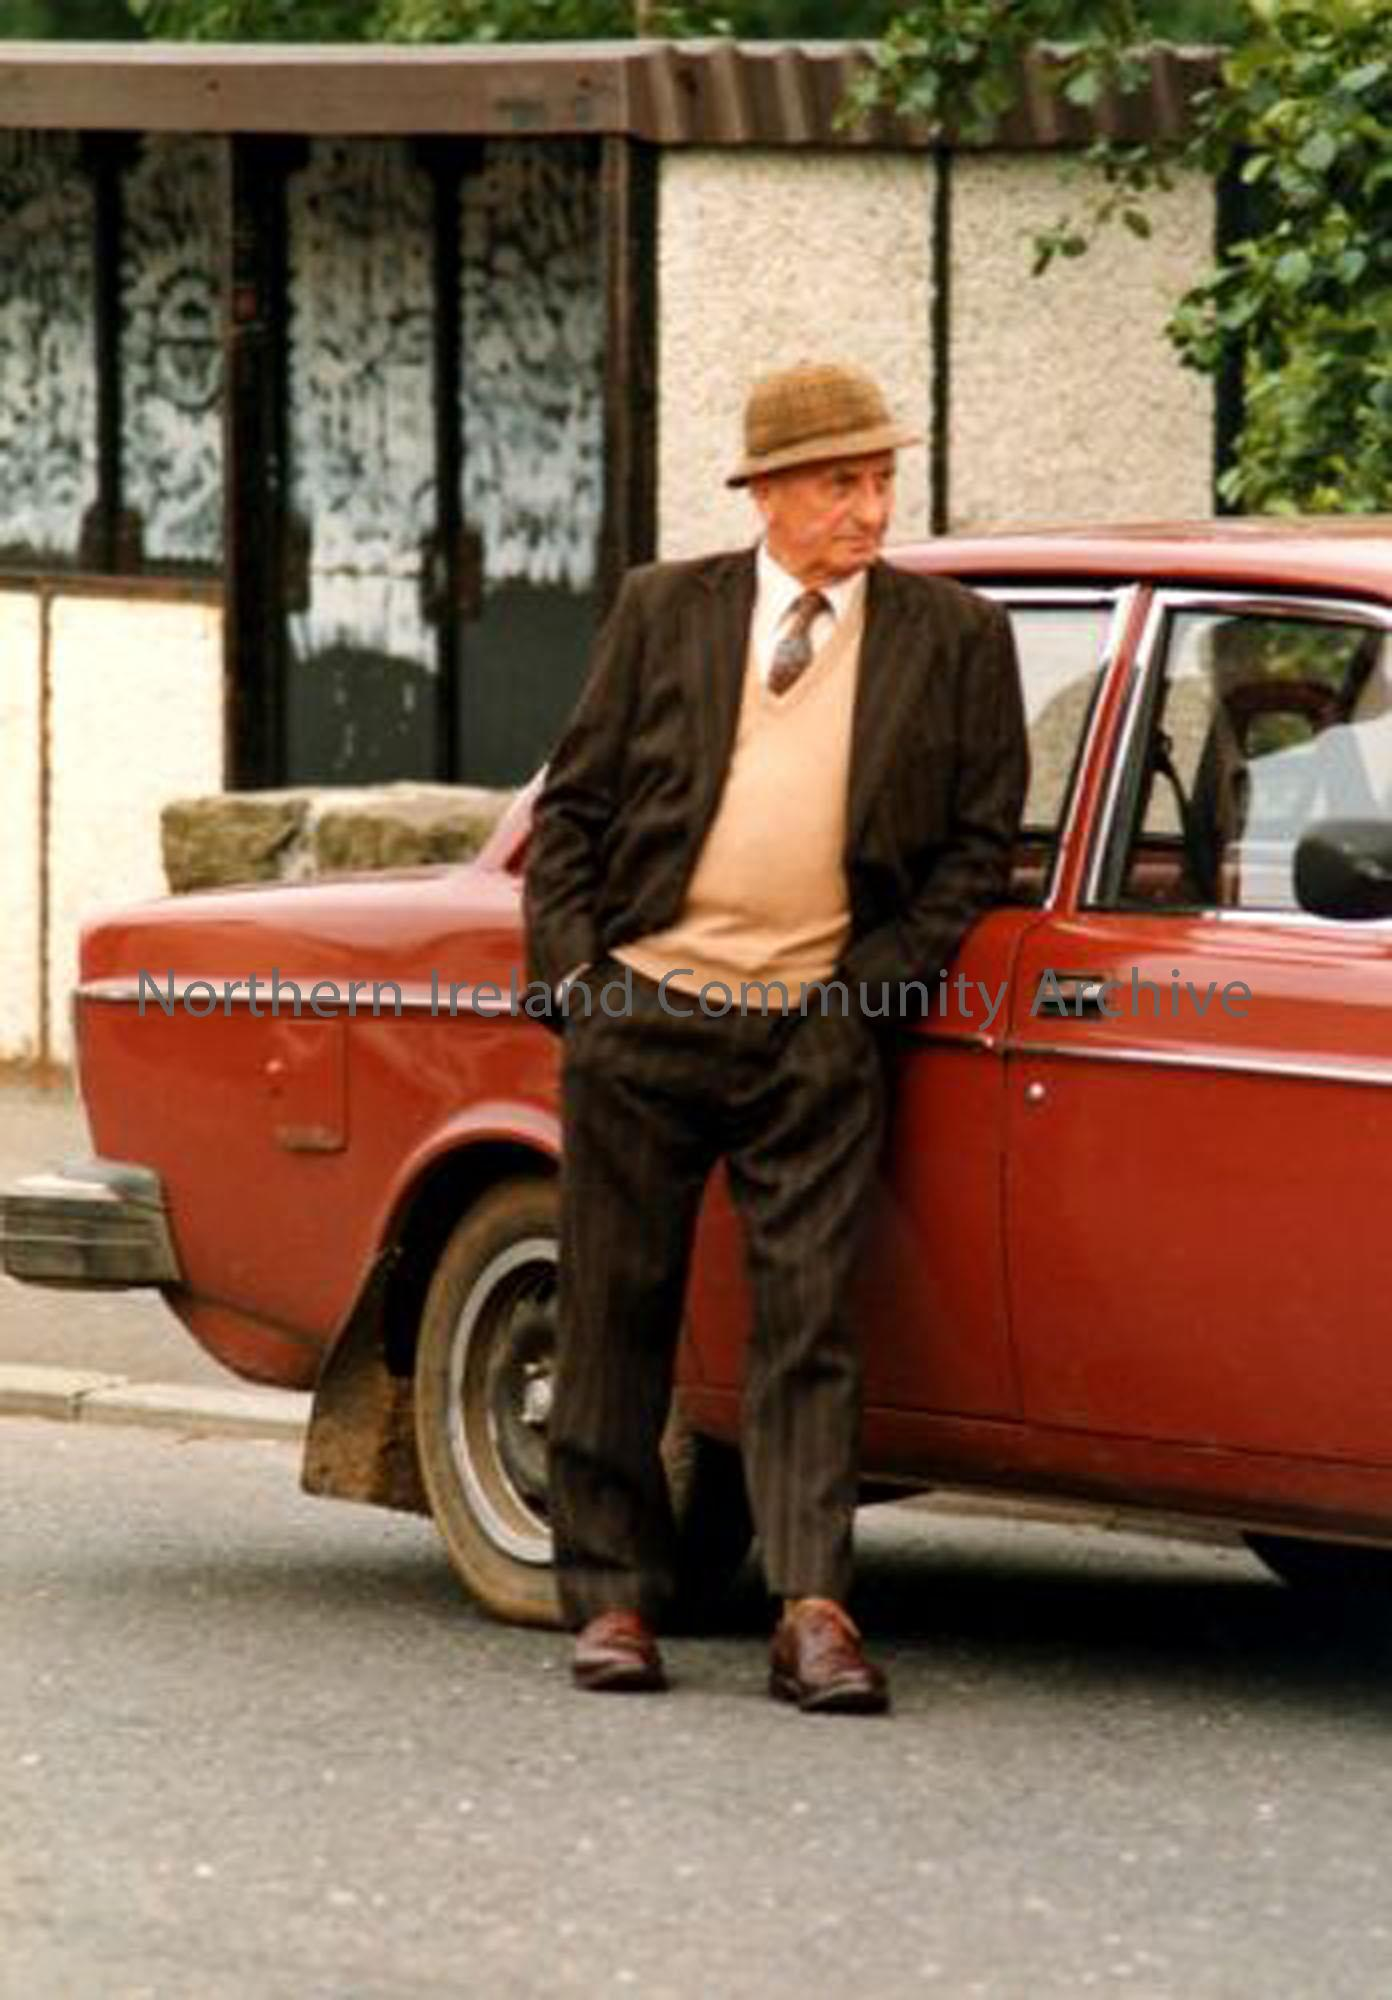 Jack Campbell, deceased, standing beside his car alongside the first bus shelter in Dervock. He was famous for a breed of pigs called Carncullagh Whites. His family sold the farm and now farm in Scotland. (3660)